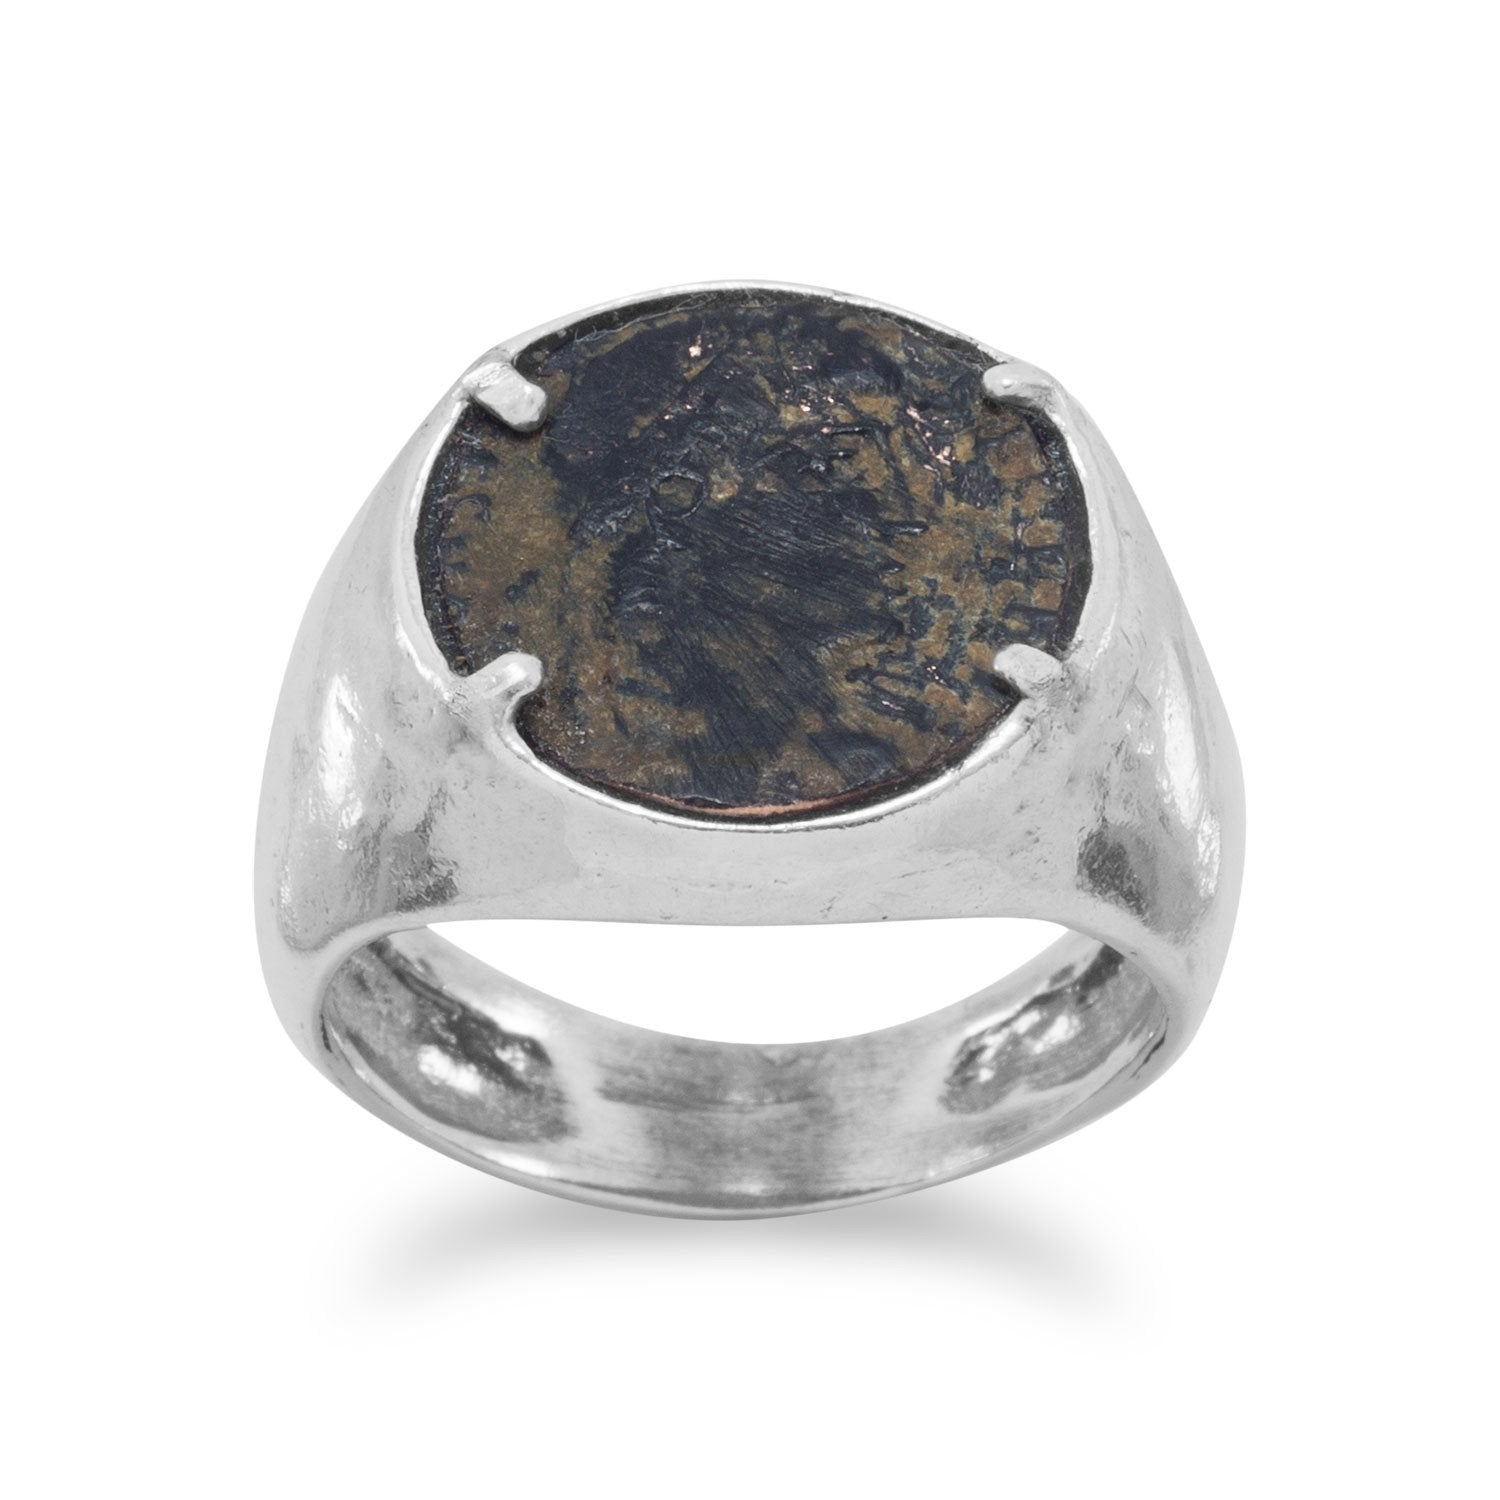 Ancient Roman Rings ancient roman coin ring